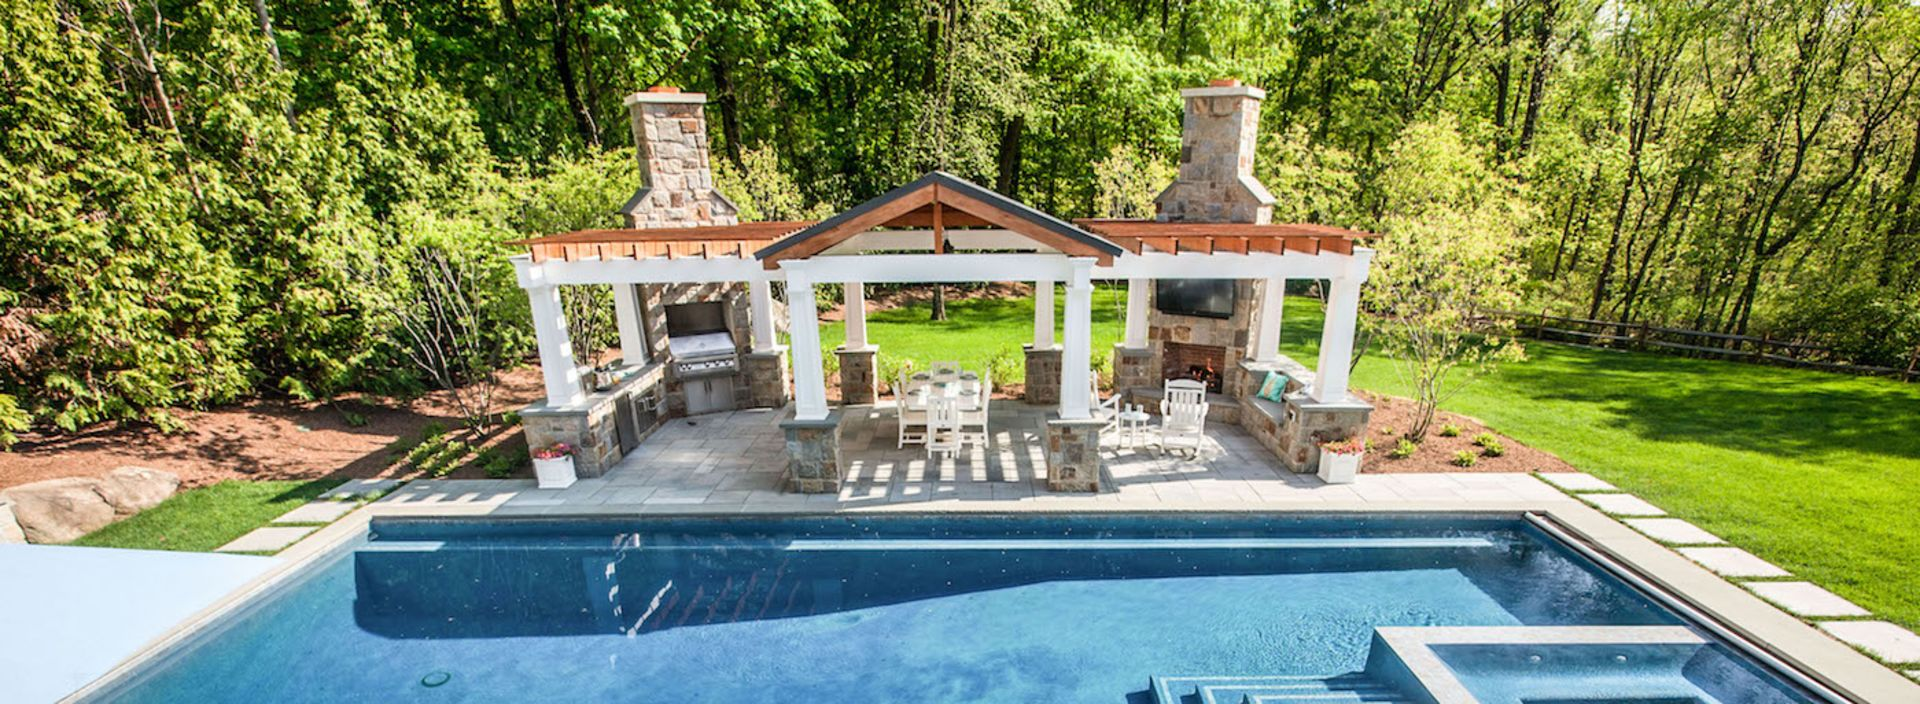 FEATURED 670 Franklin Lake Road – Stunning Modern Day Estate